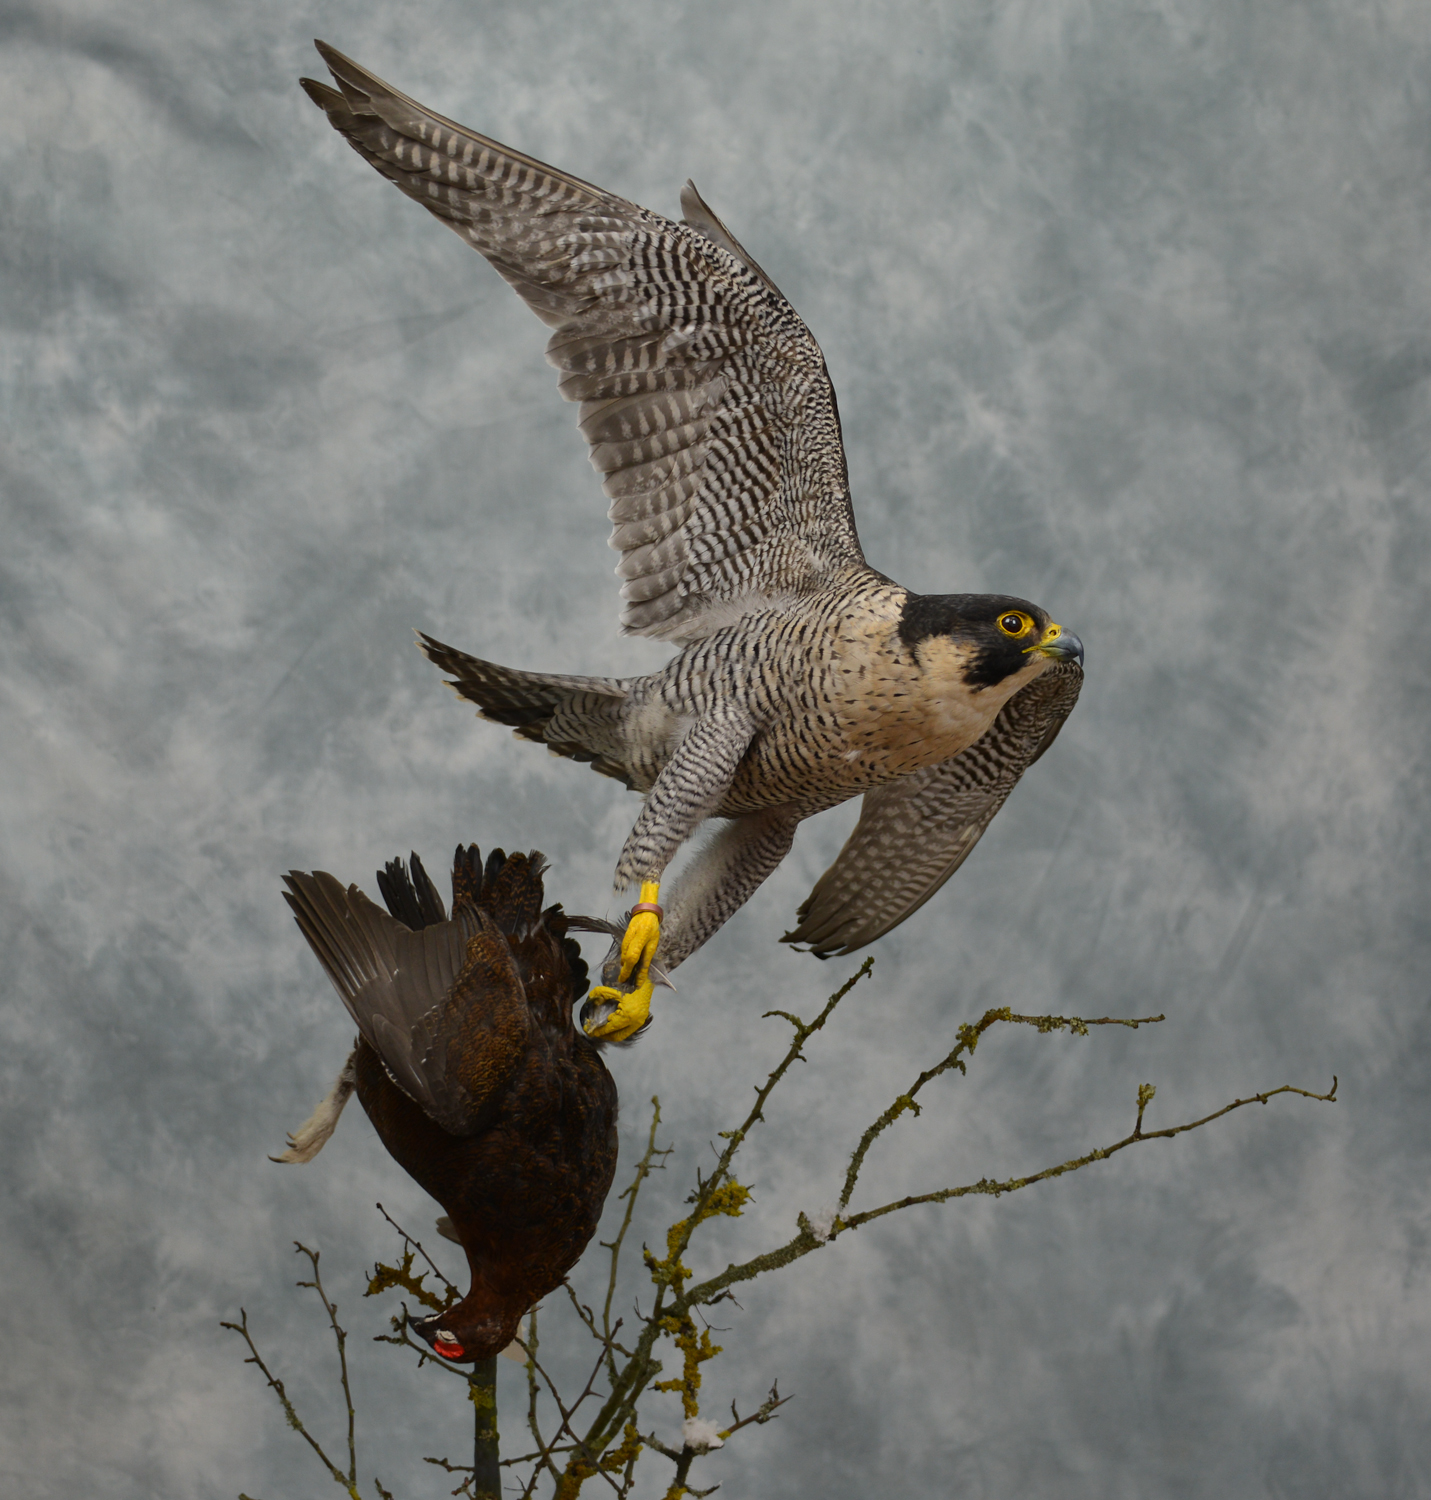 Peregrine Falcon Catching Grouse - UK Bird Small Mammal ...